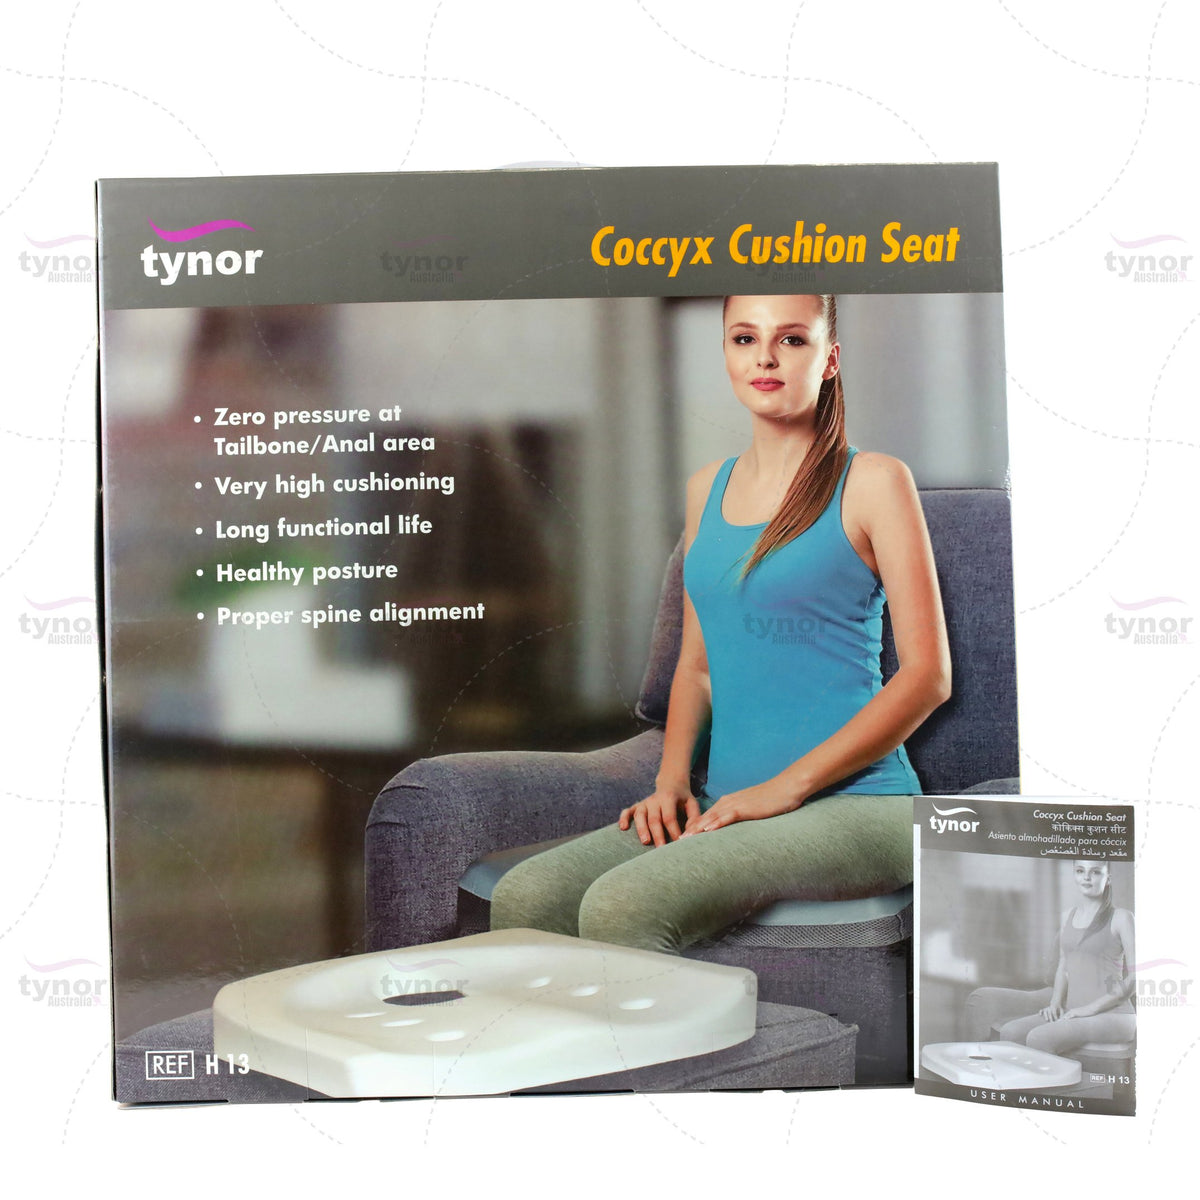 Tynor Australia Coccyx Cushion Seat Coccyx Seat Physio Supplies Orthopedic aids Physio Supports Australia